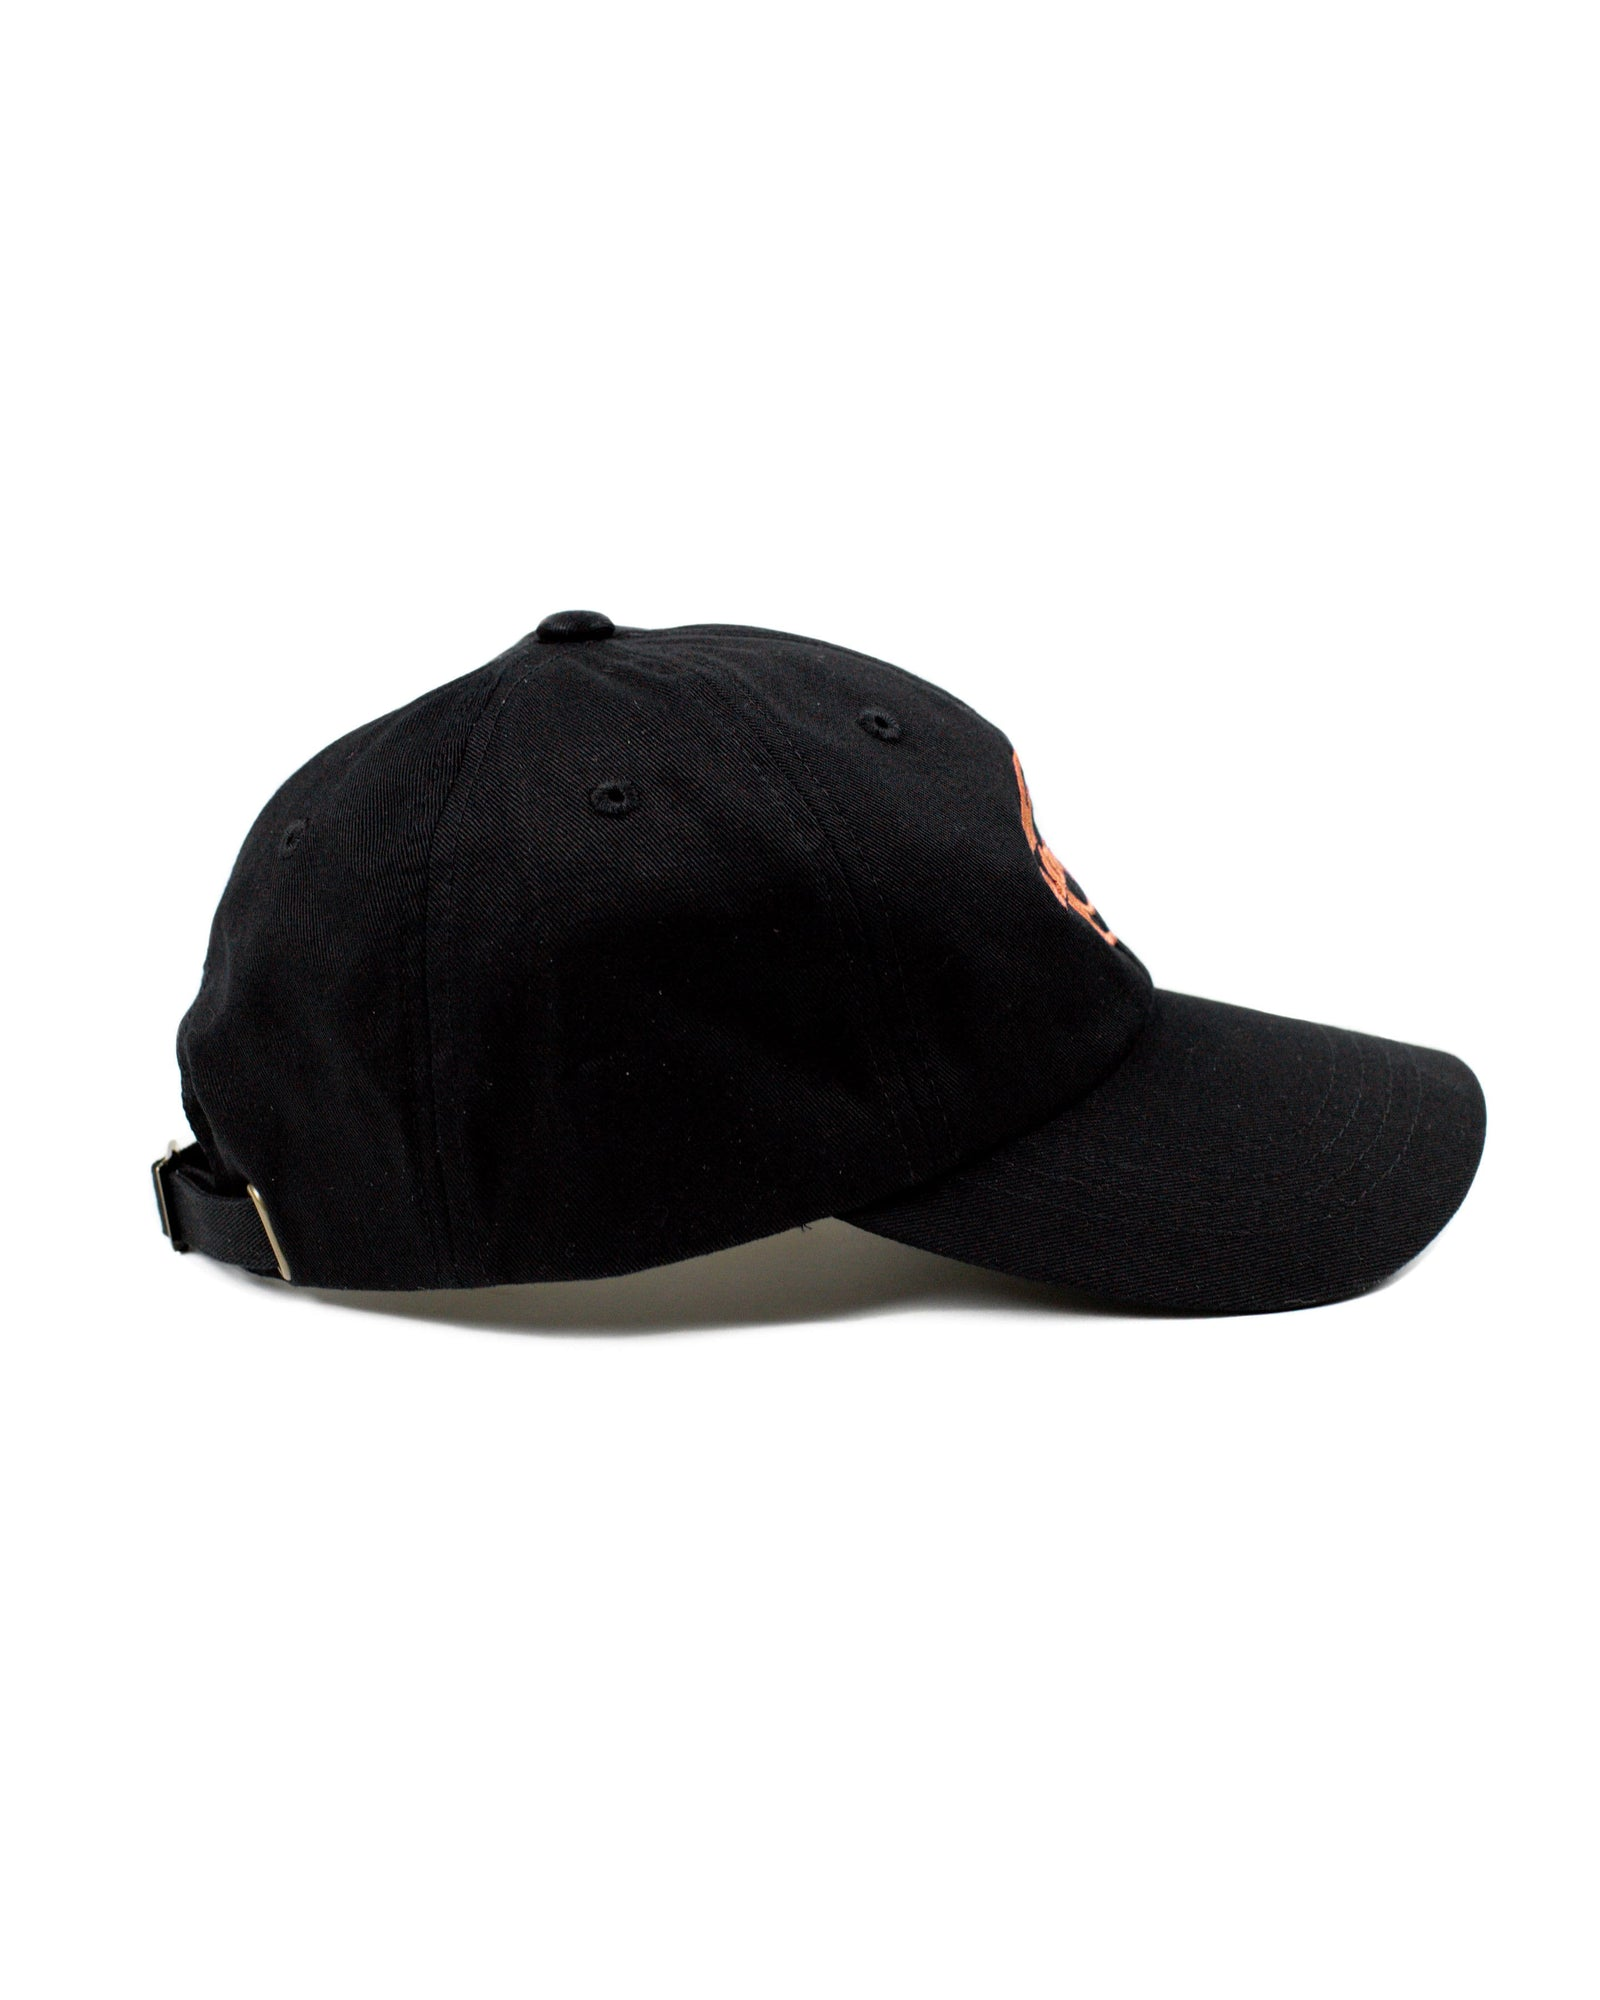 'Subsidia' Dad Hat - Black/Orange